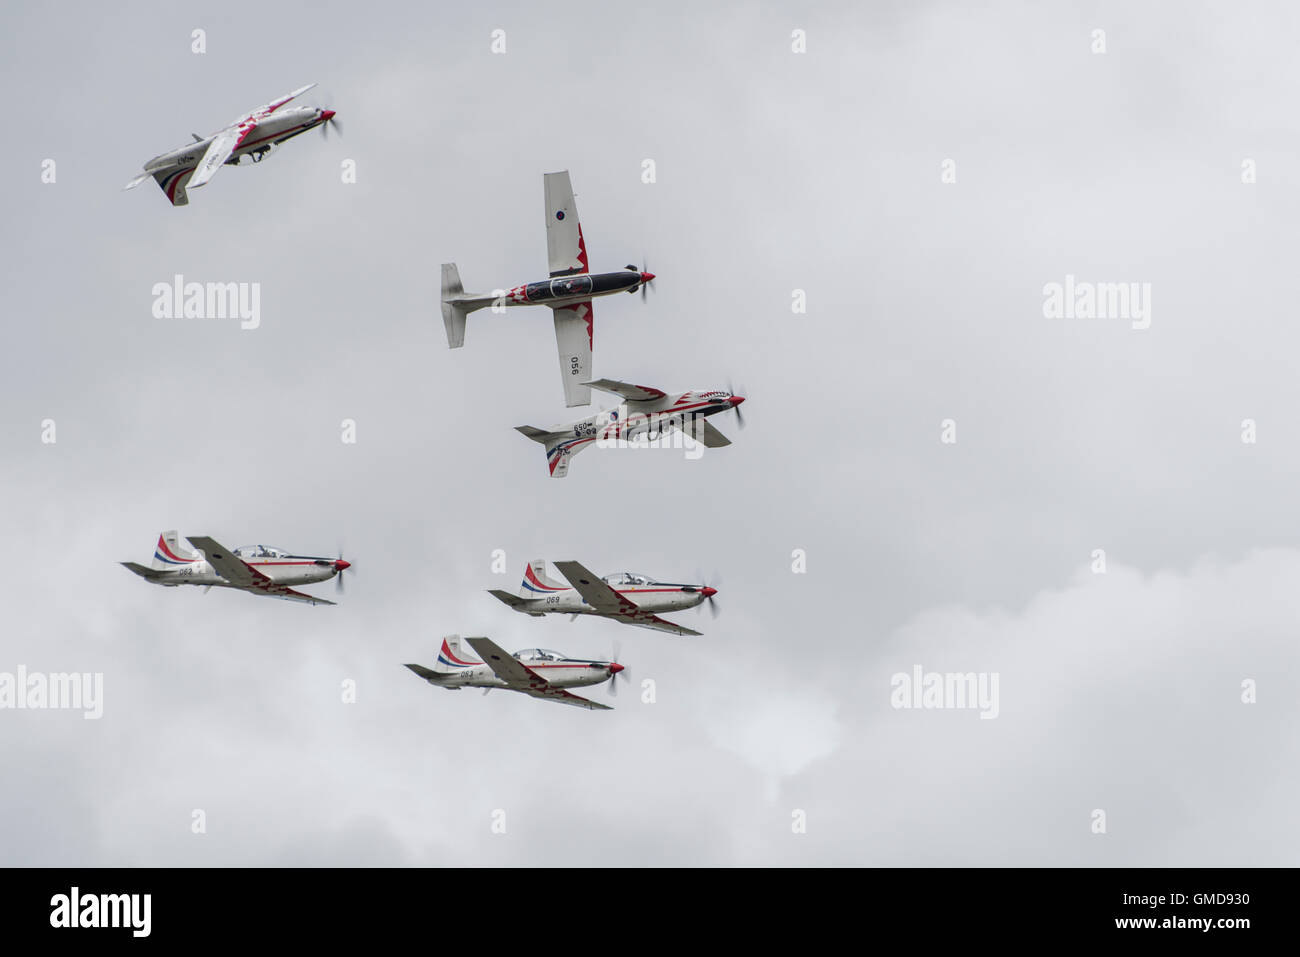 The Croatian Air Force Military Aerobatic Display Team Krila Oluje fly their Pilatus PC-9M turboprop trainers at the 2016 RIAT Stock Photo